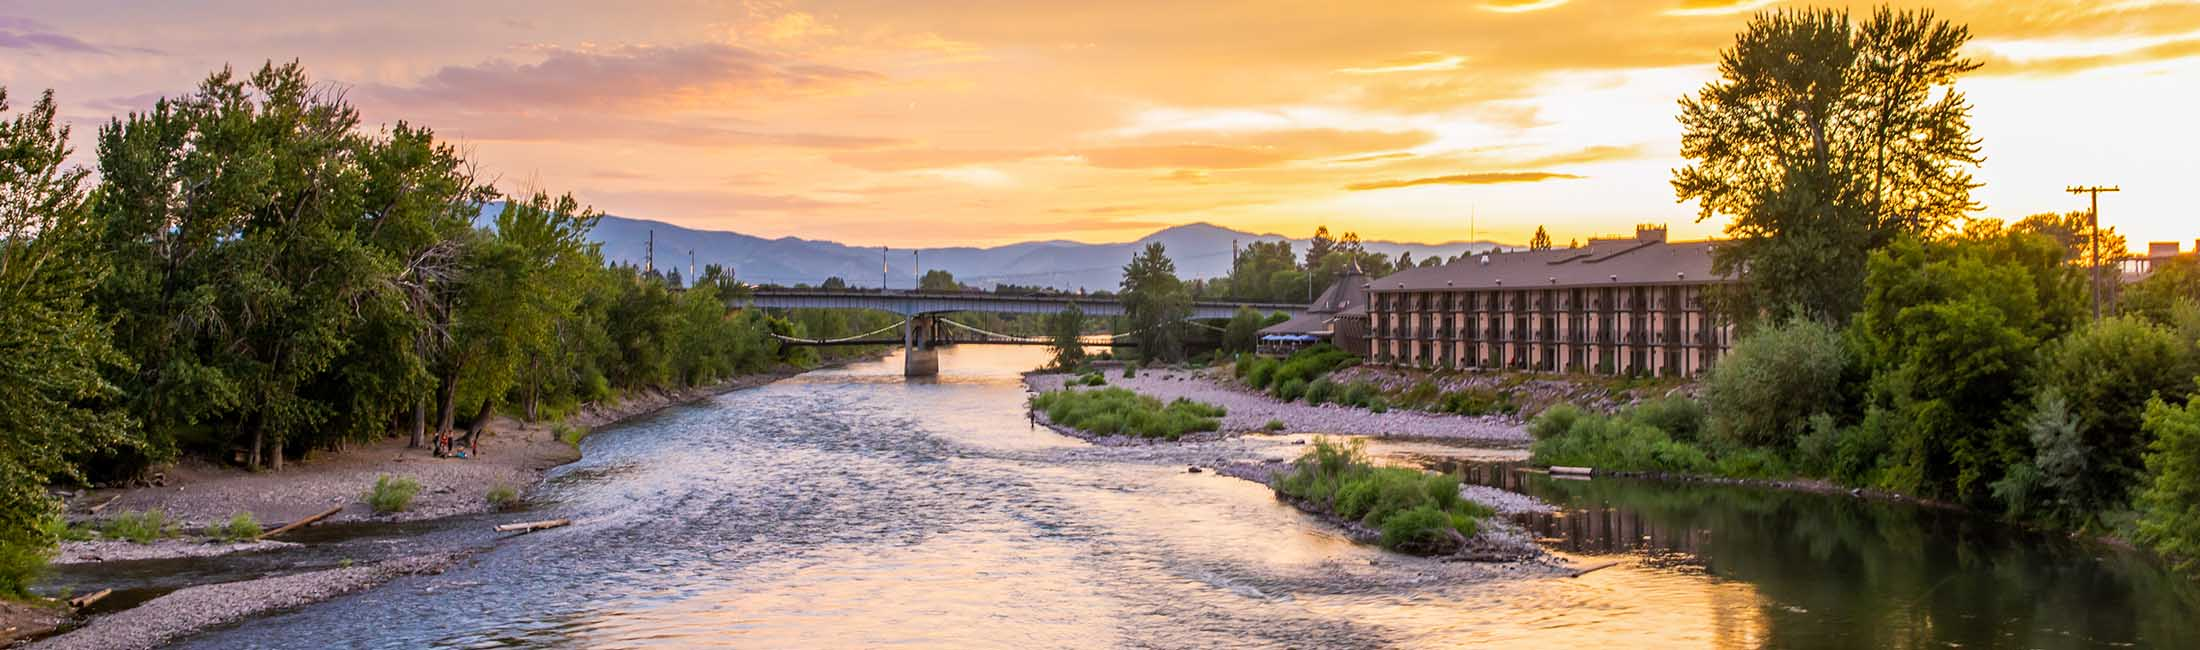 Plan the Perfect Staycation in Missoula